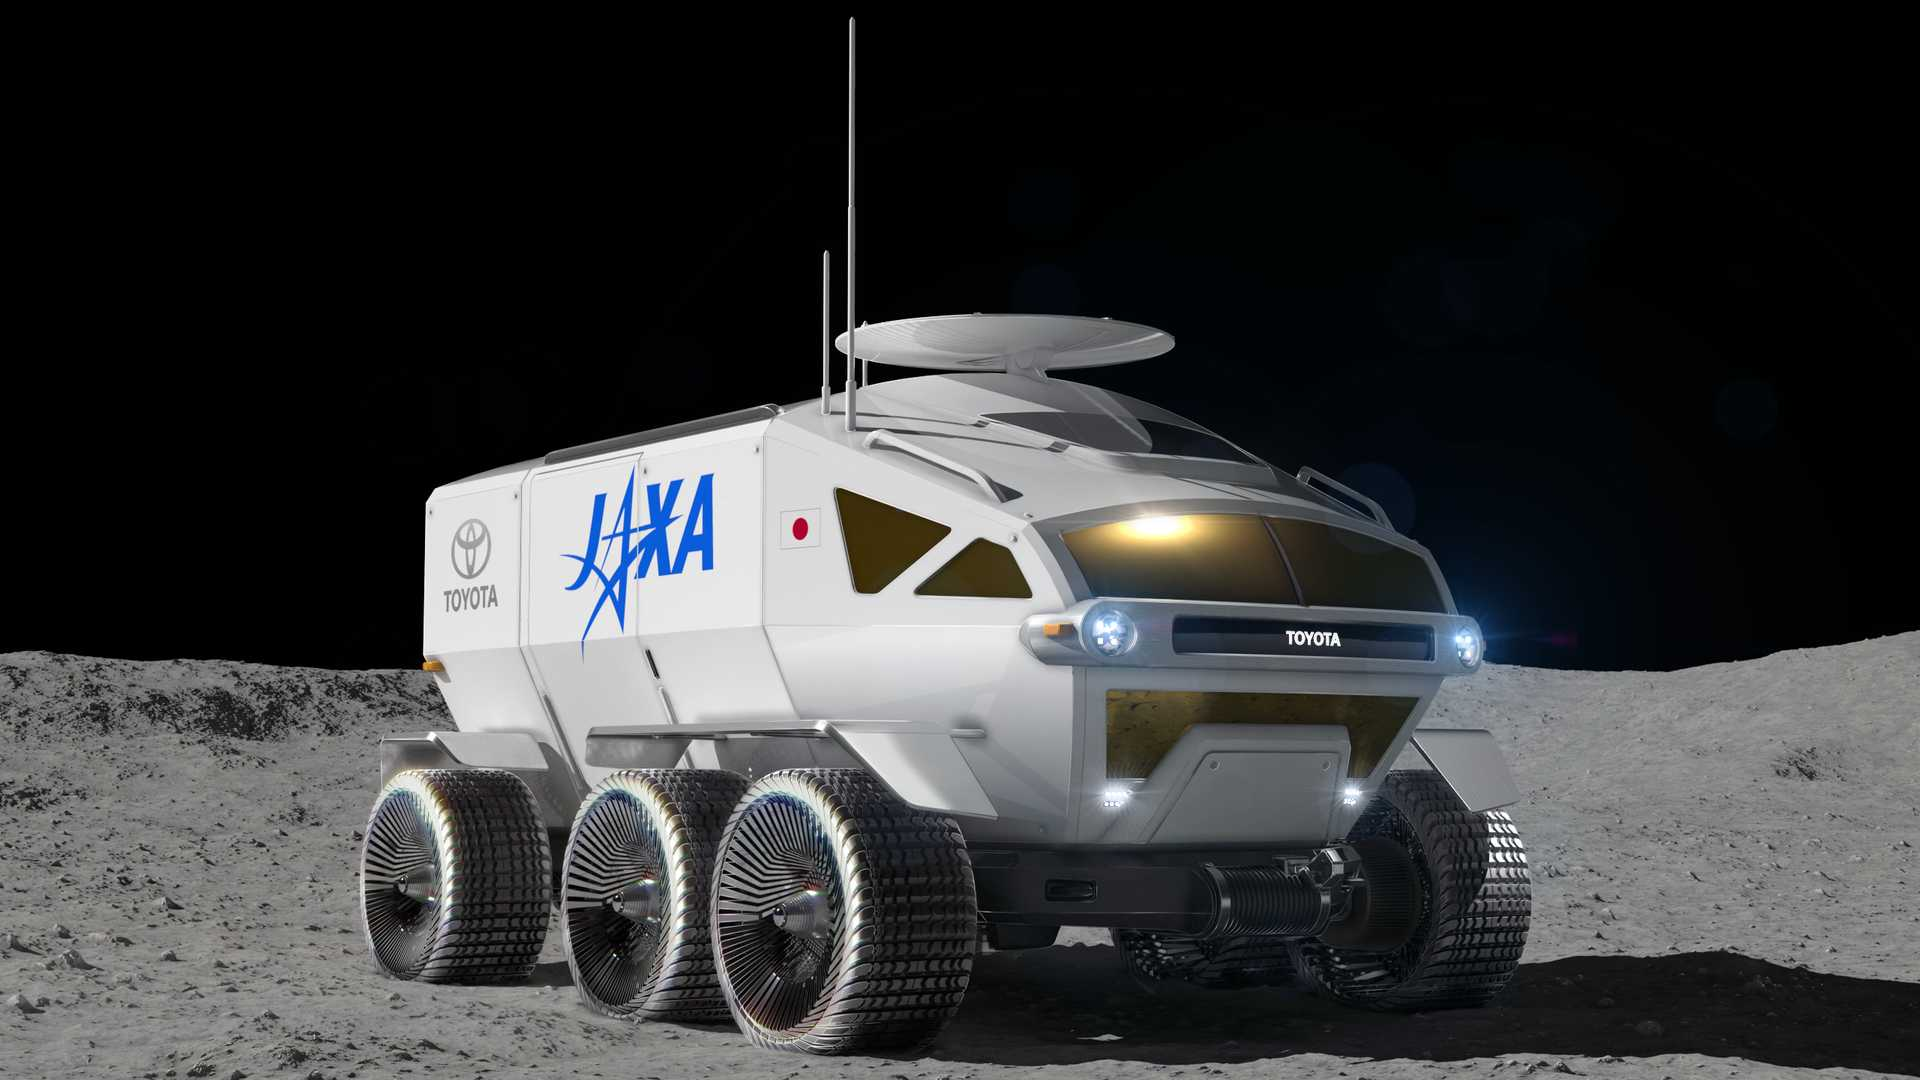 Toyota Inks Deal With Japan On New Rover For Moon And Mars